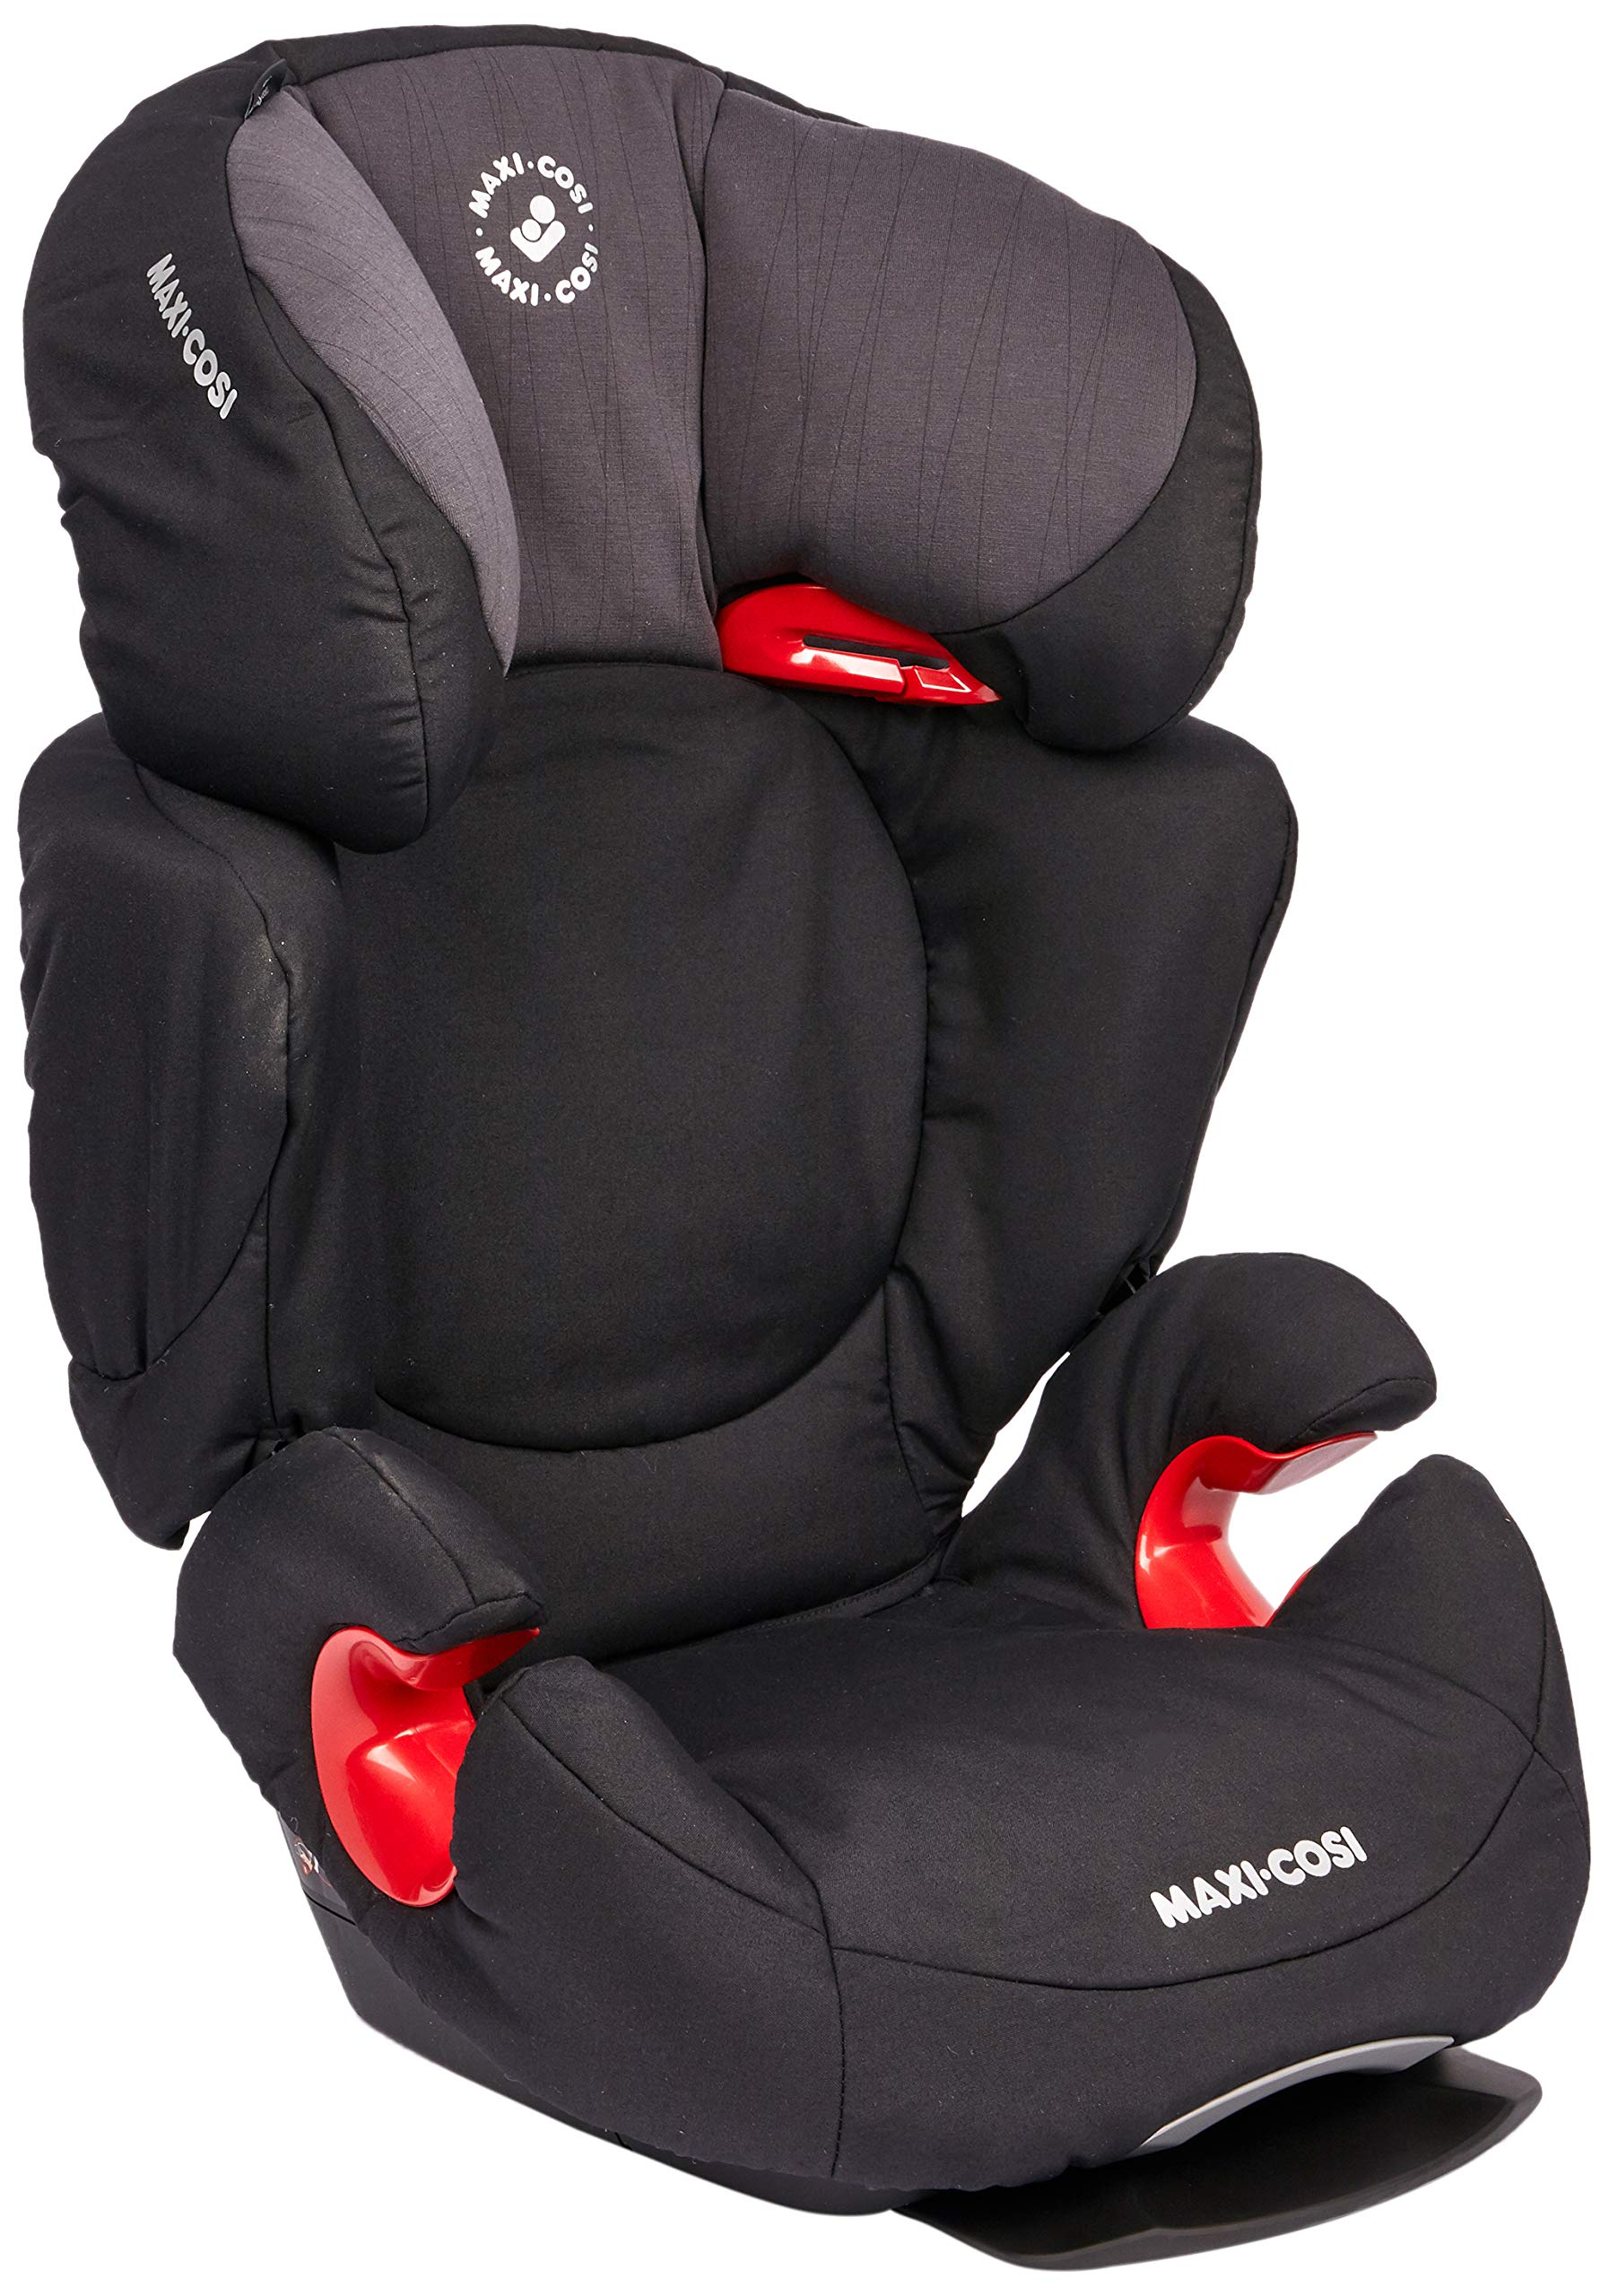 Maxi-Cosi Rodi AirProtect Child Car Seat, Lightweight Highback Booster, 3.5-12 Years, 15-36 kg, Frequency Black Maxi-Cosi Child car seat, suitable from 3.5 to 12 years (15 - 36kg) Easily install this safe car seat with a 3-point seat belt and attach the anchorage point in the head rest through your cars head rest Patented air protect technology in headrest reduces the risk of head and neck injuries up to 20 percent 3